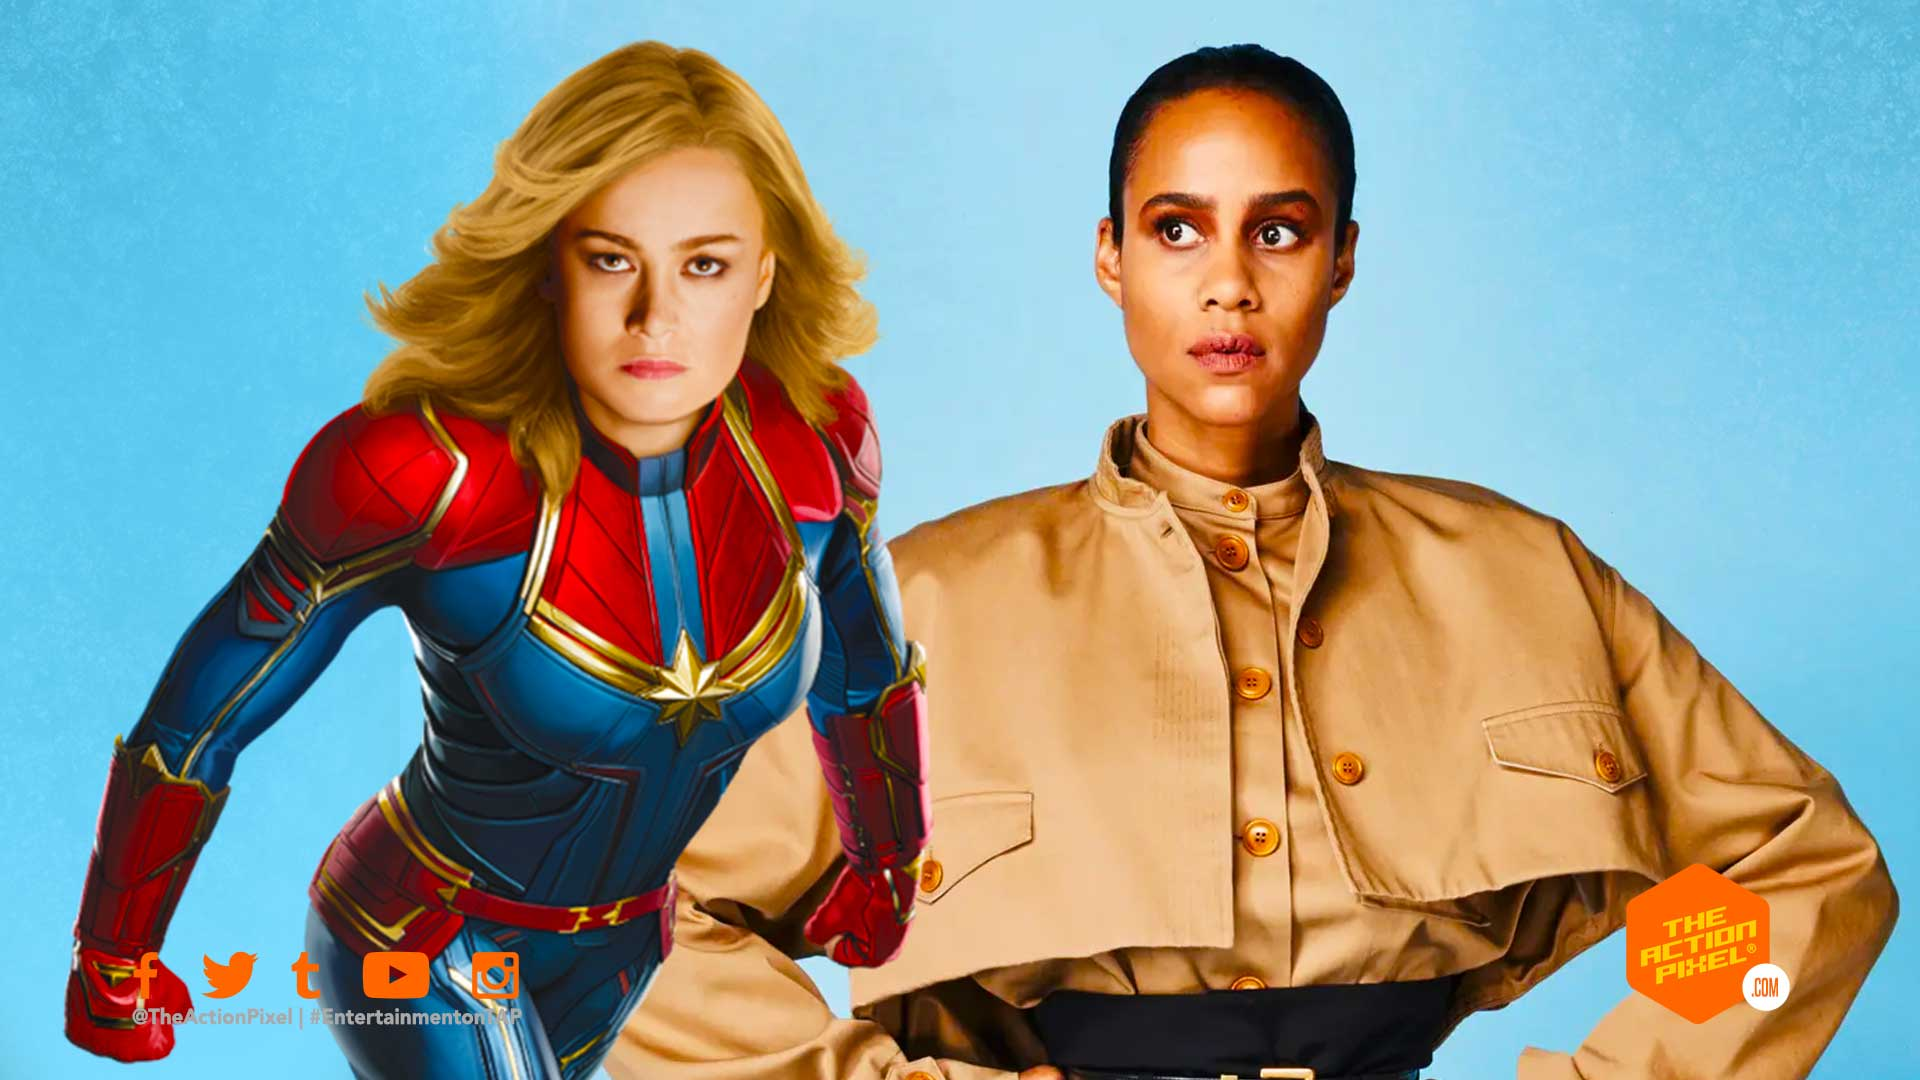 zawe ashton, captain marvel 2, captain marvel, the action pixel, entertainment on tap,marvel studios, marvel phase 4, brie larson, captain marvel , carol danvers, entertainment on tap, the action pixel, featured,